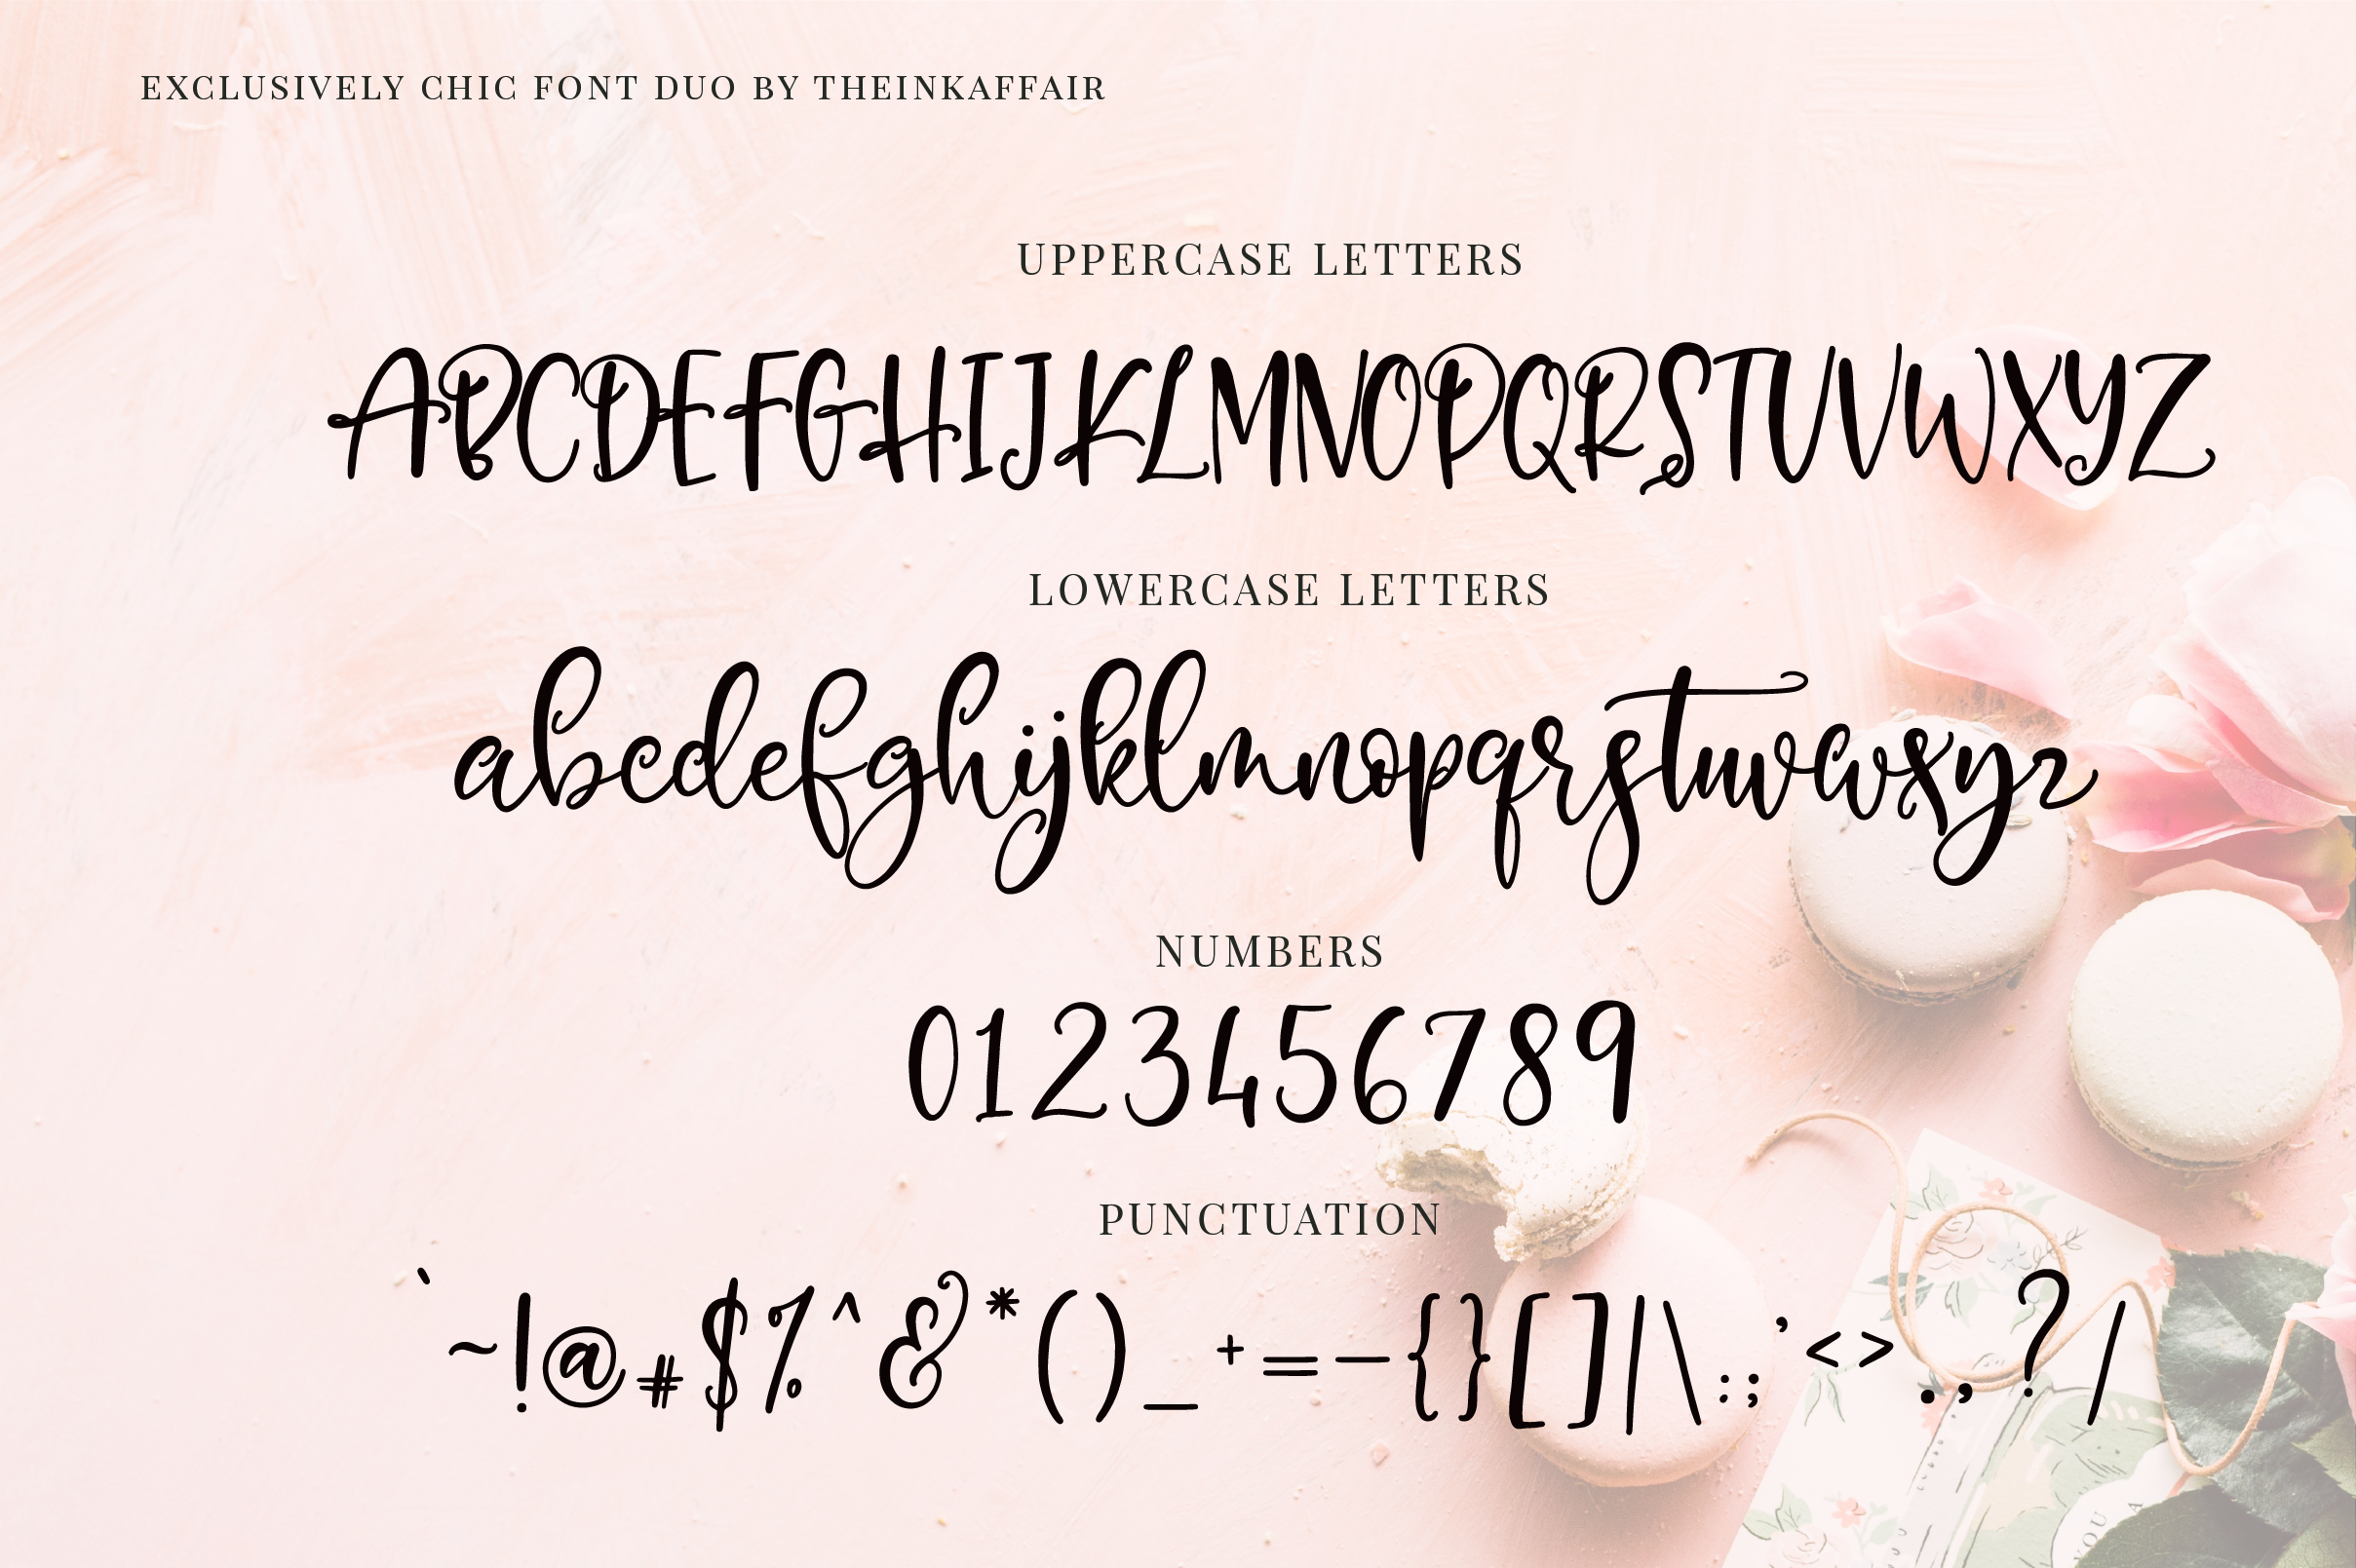 Exclusively Chic Font Duo example image 10